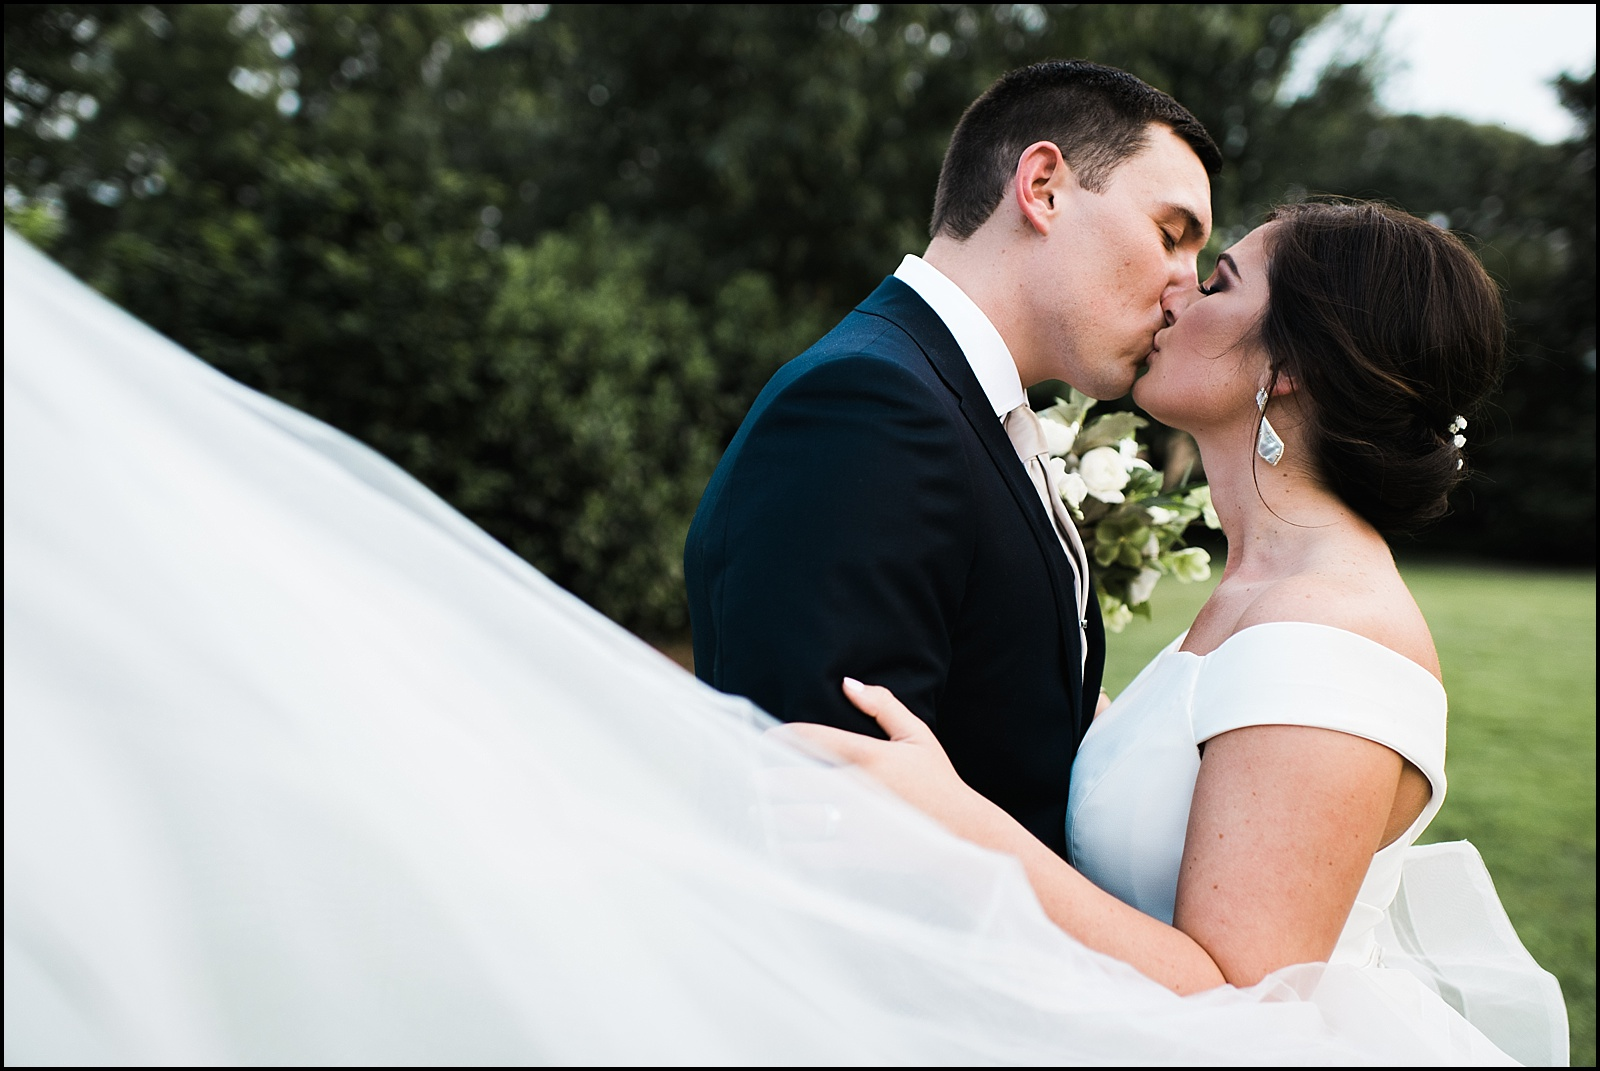 Kissing portrait at wedding